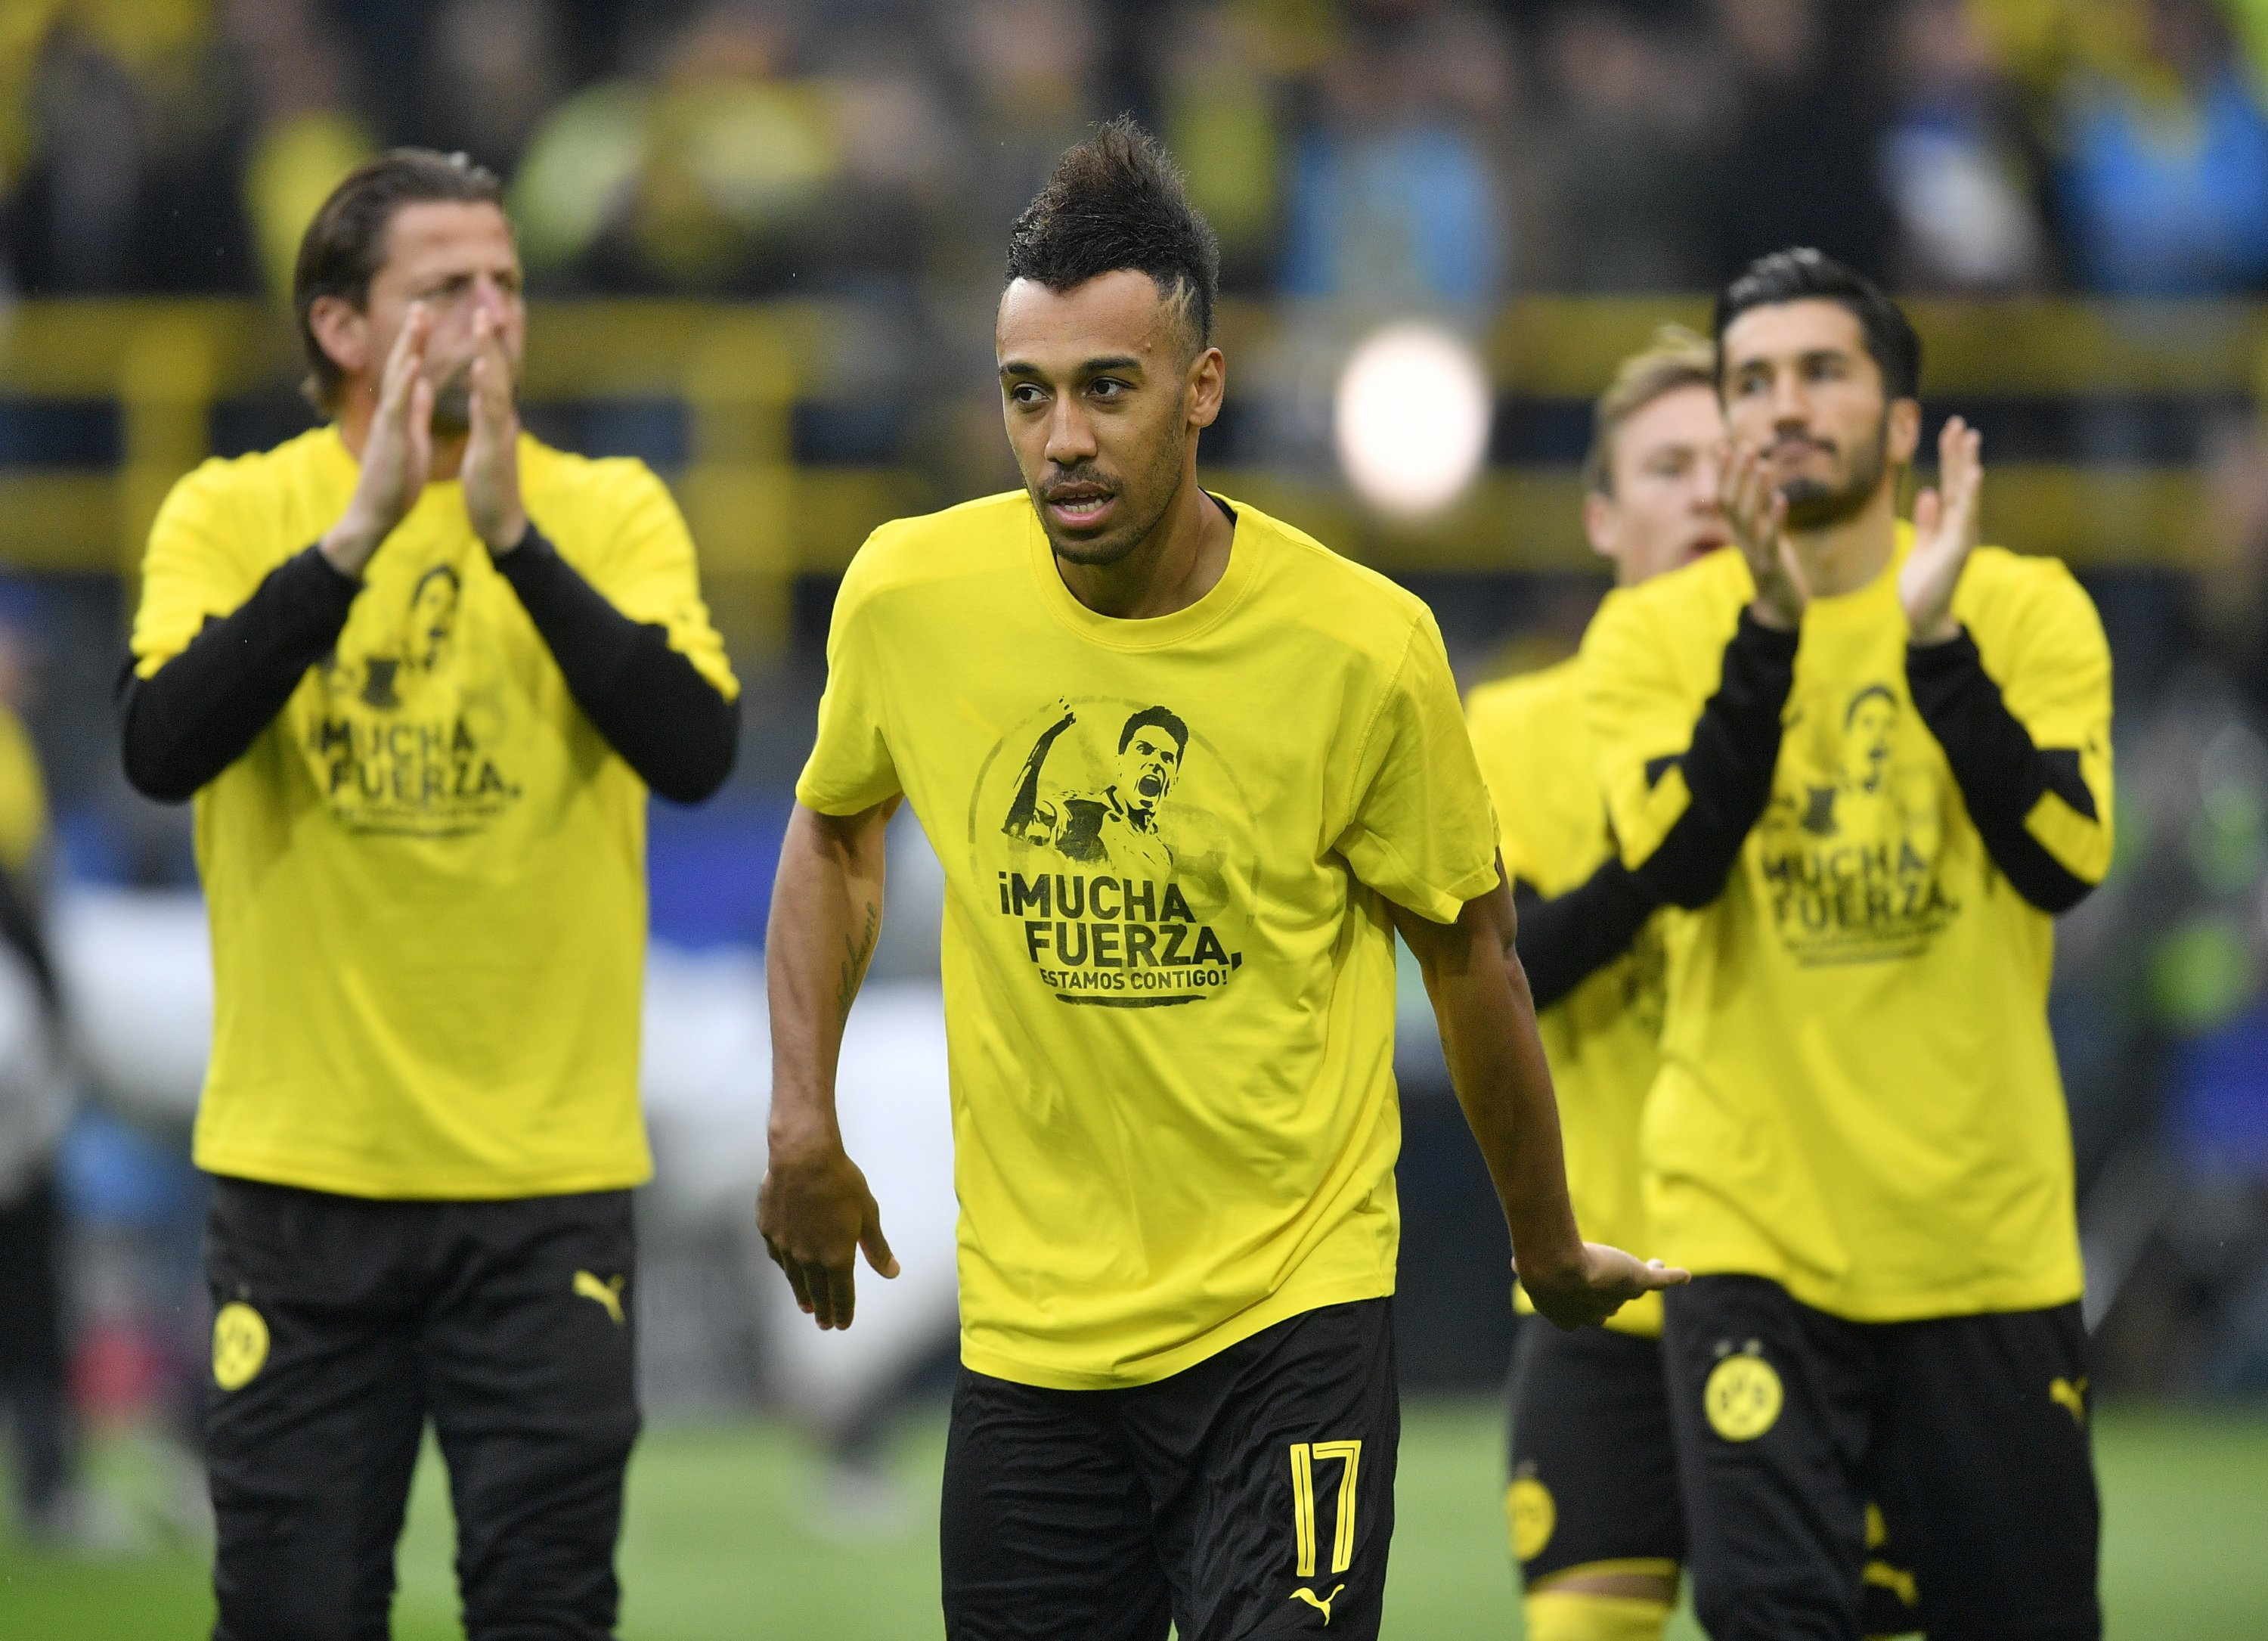 The Latest: Fans cheer Dortmund defender wounded in attack